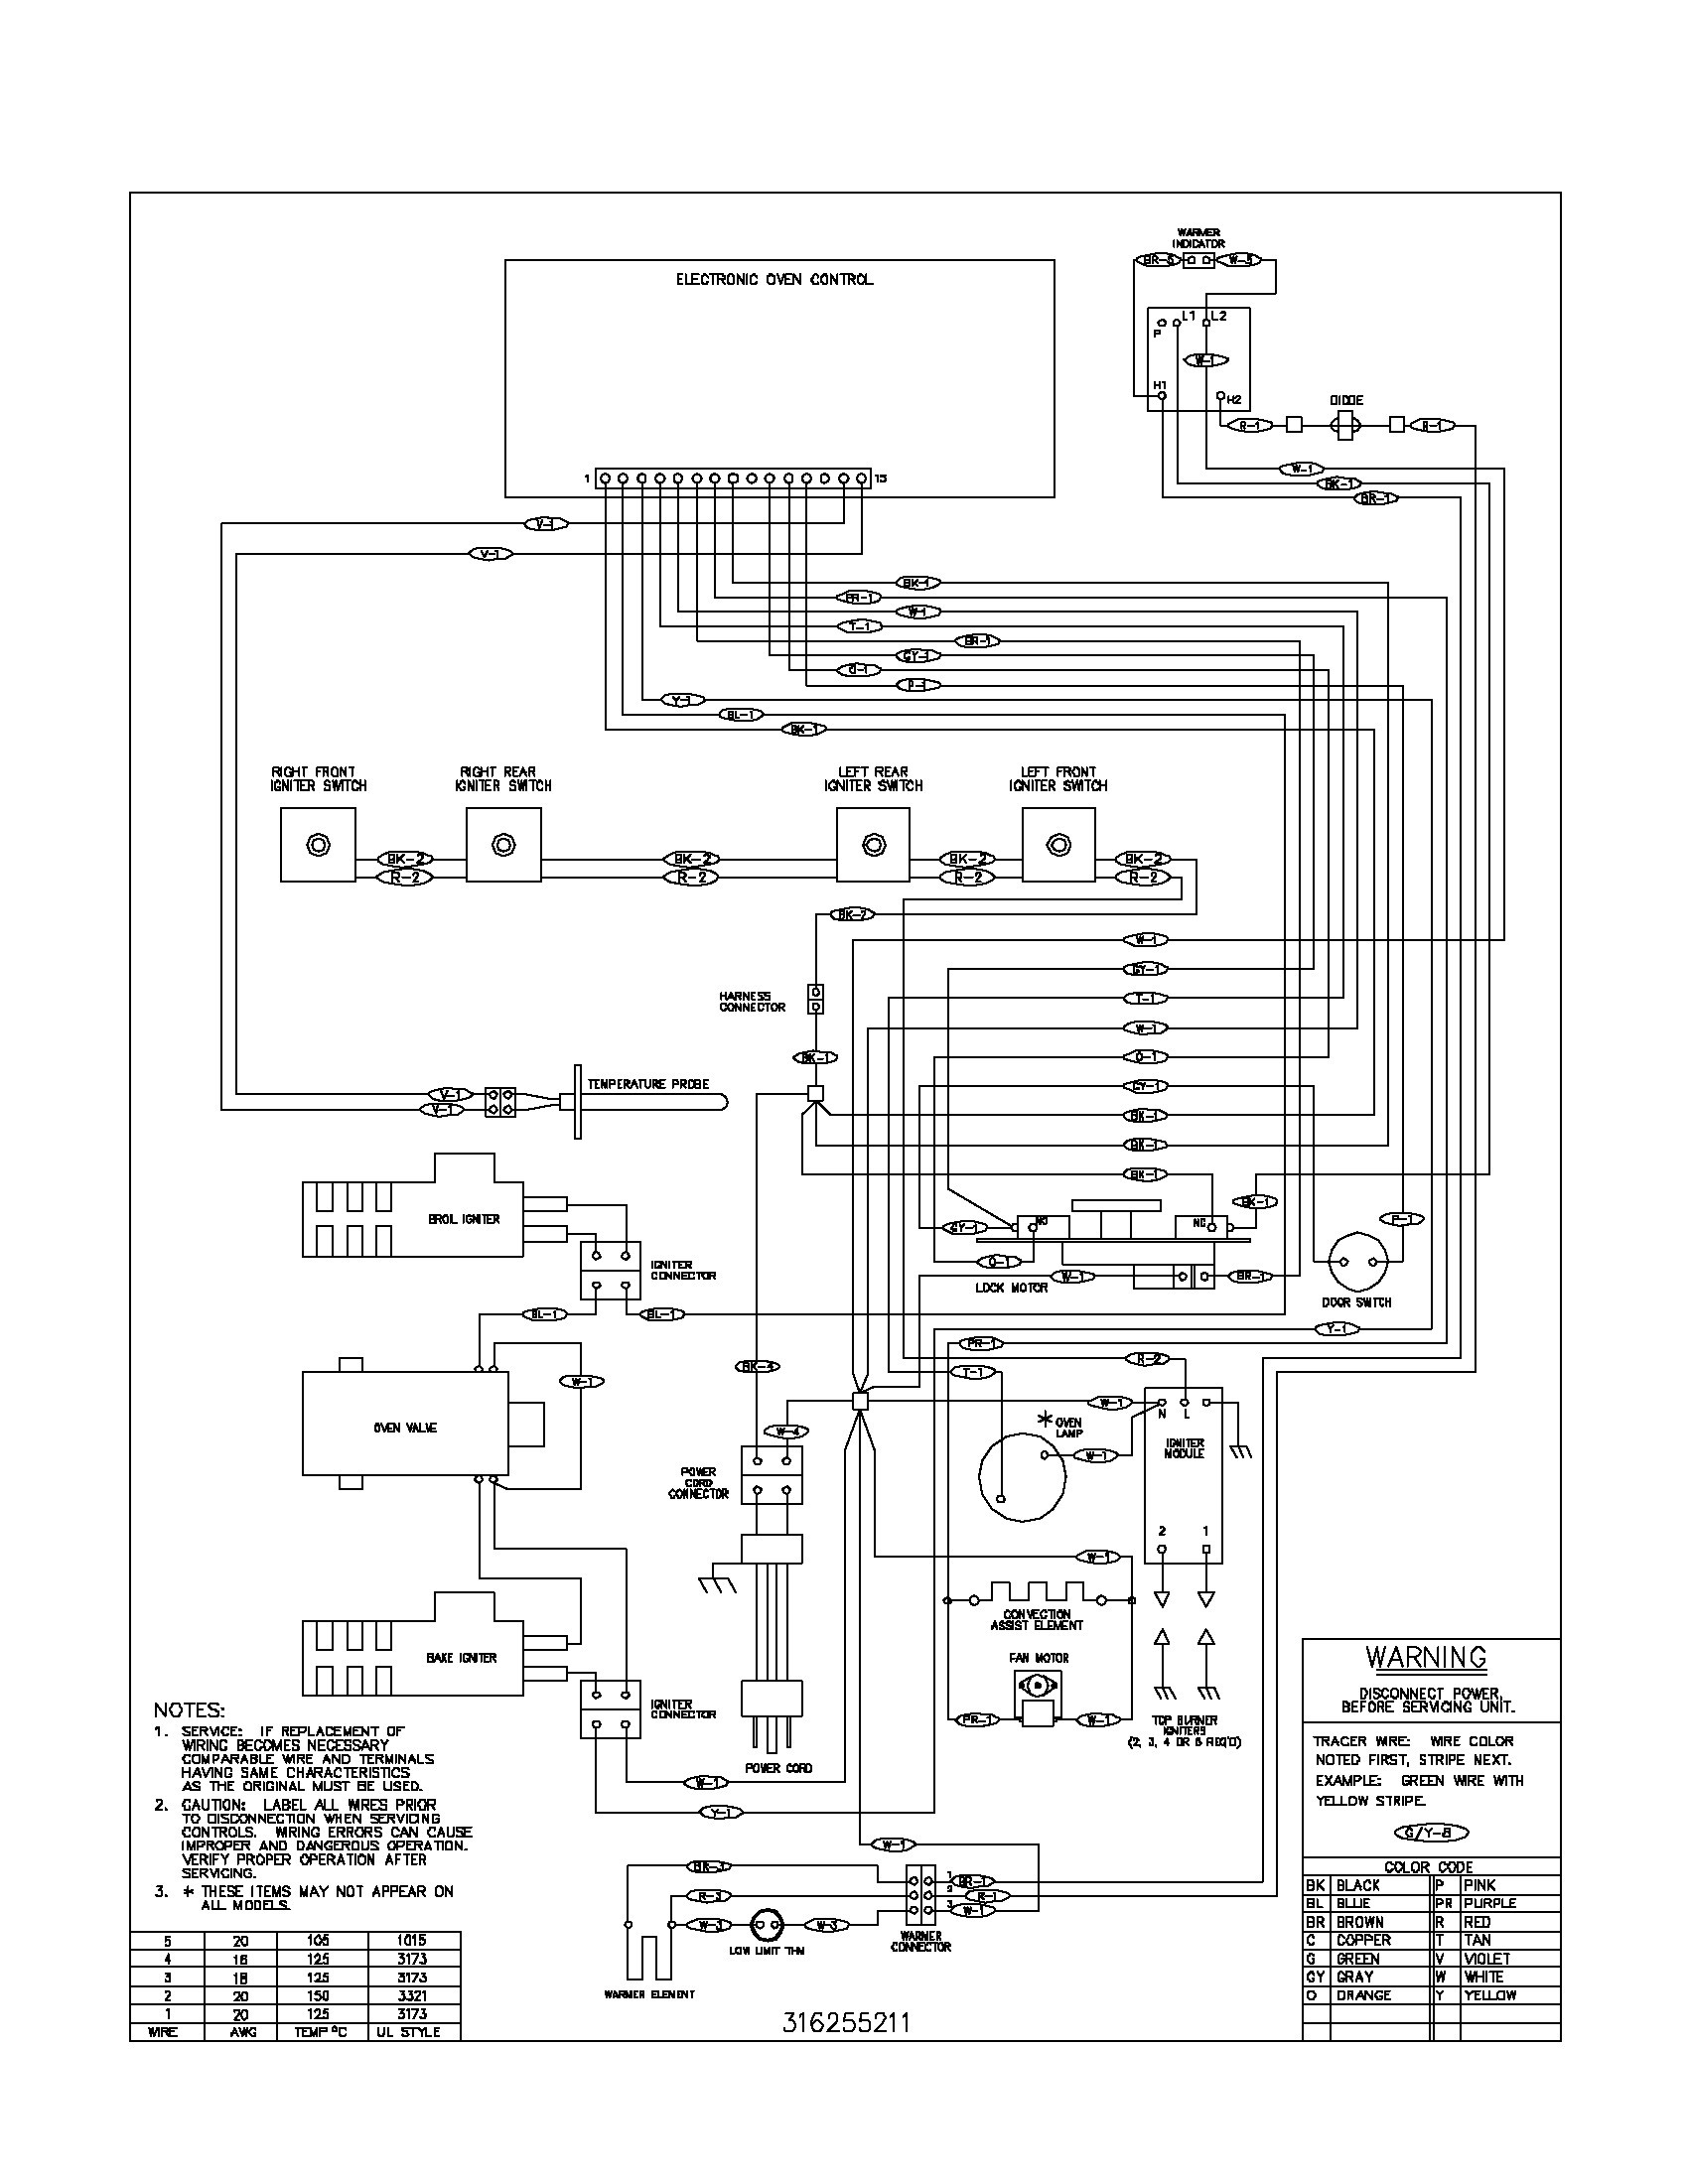 Intoxalock Wiring Diagram Gallery